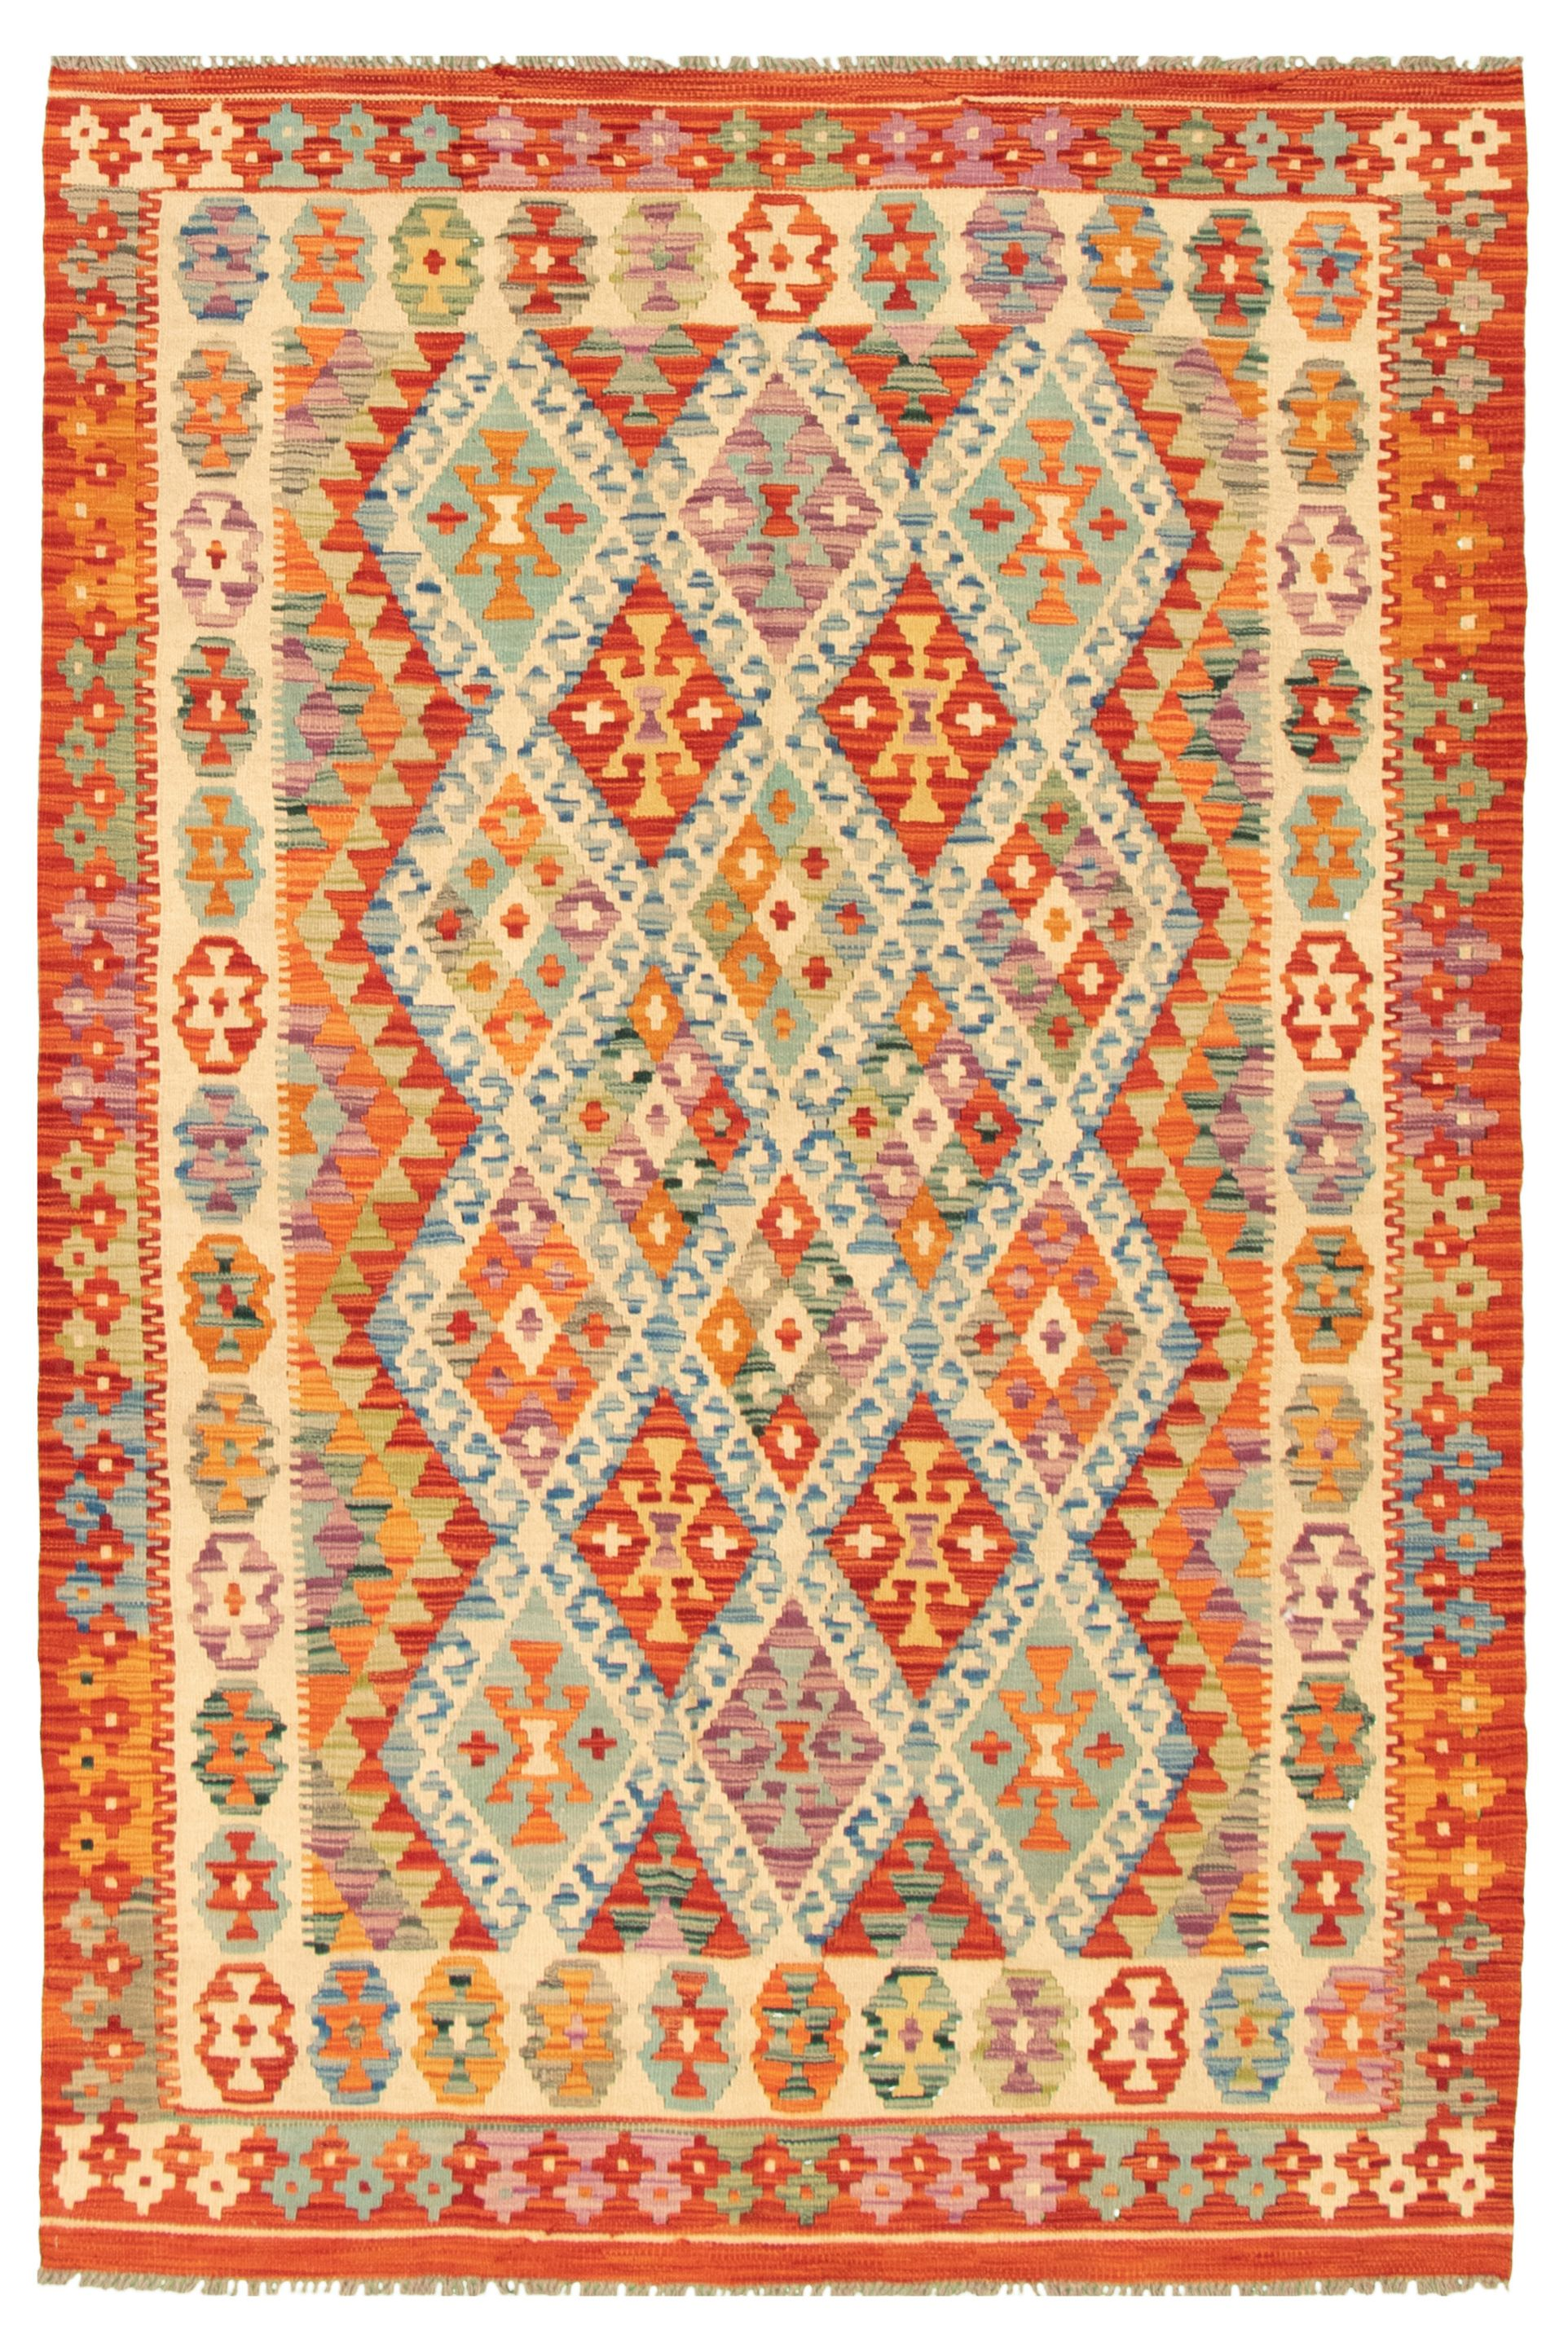 "Hand woven Bold and Colorful  Ivory, Red Wool Kilim 5'0"" x 6'10"" Size: 5'0"" x 6'10"""